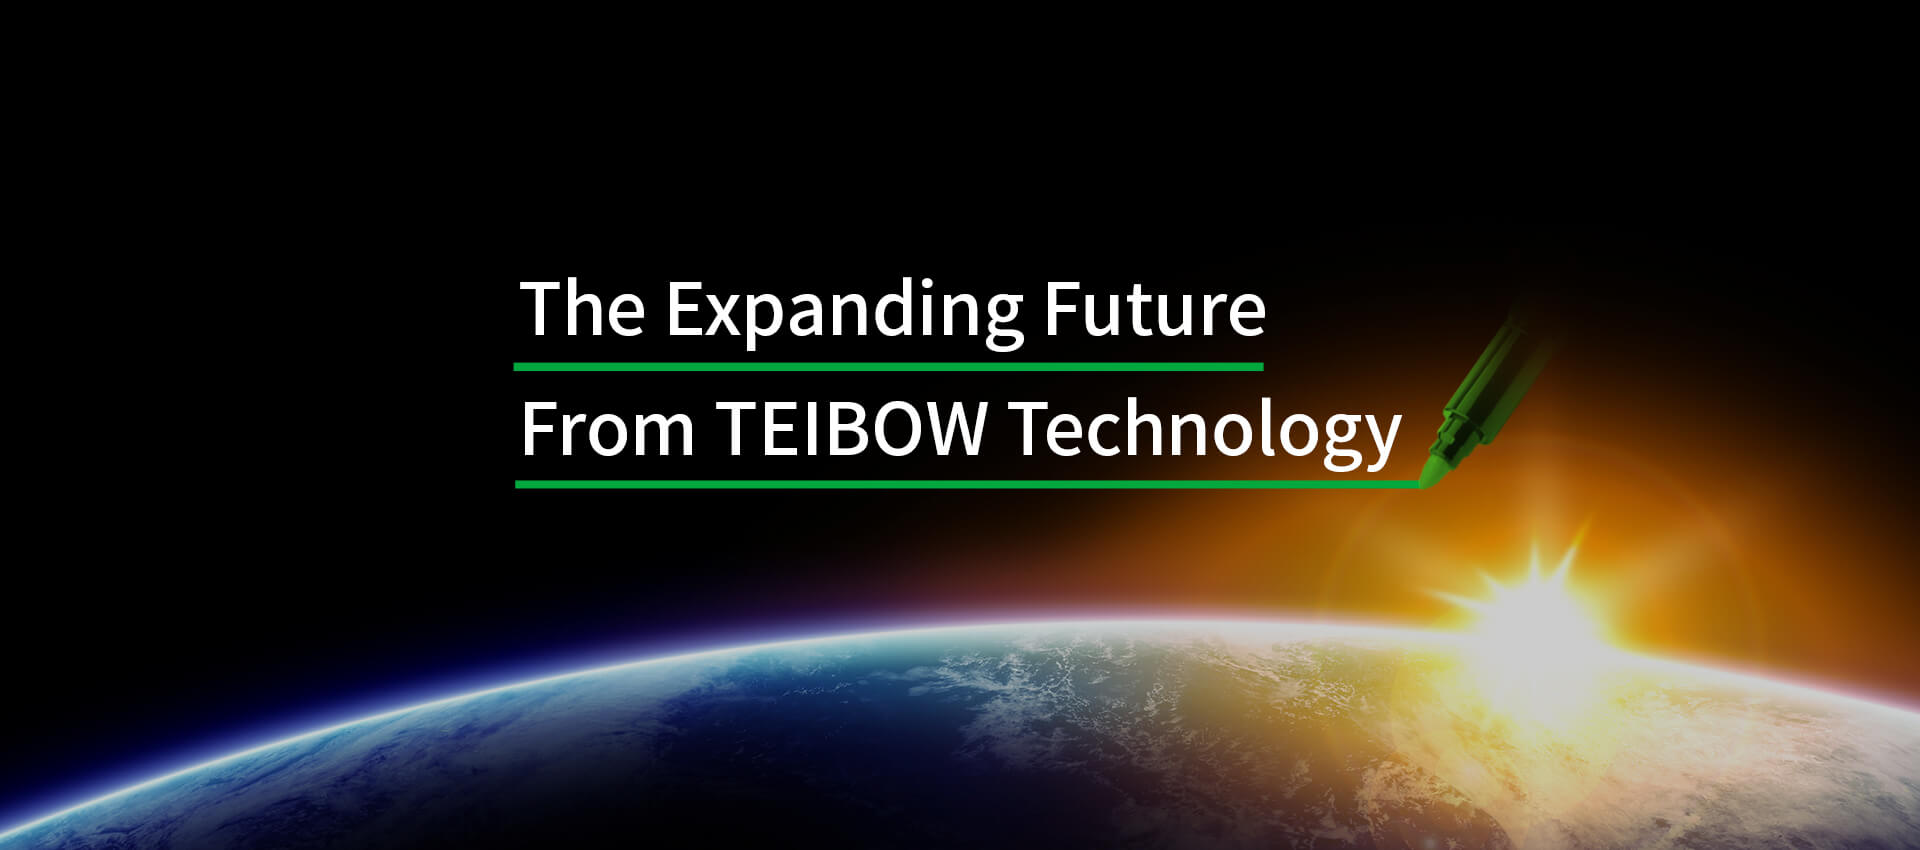 The Expanding Future From TEIBOW Technology